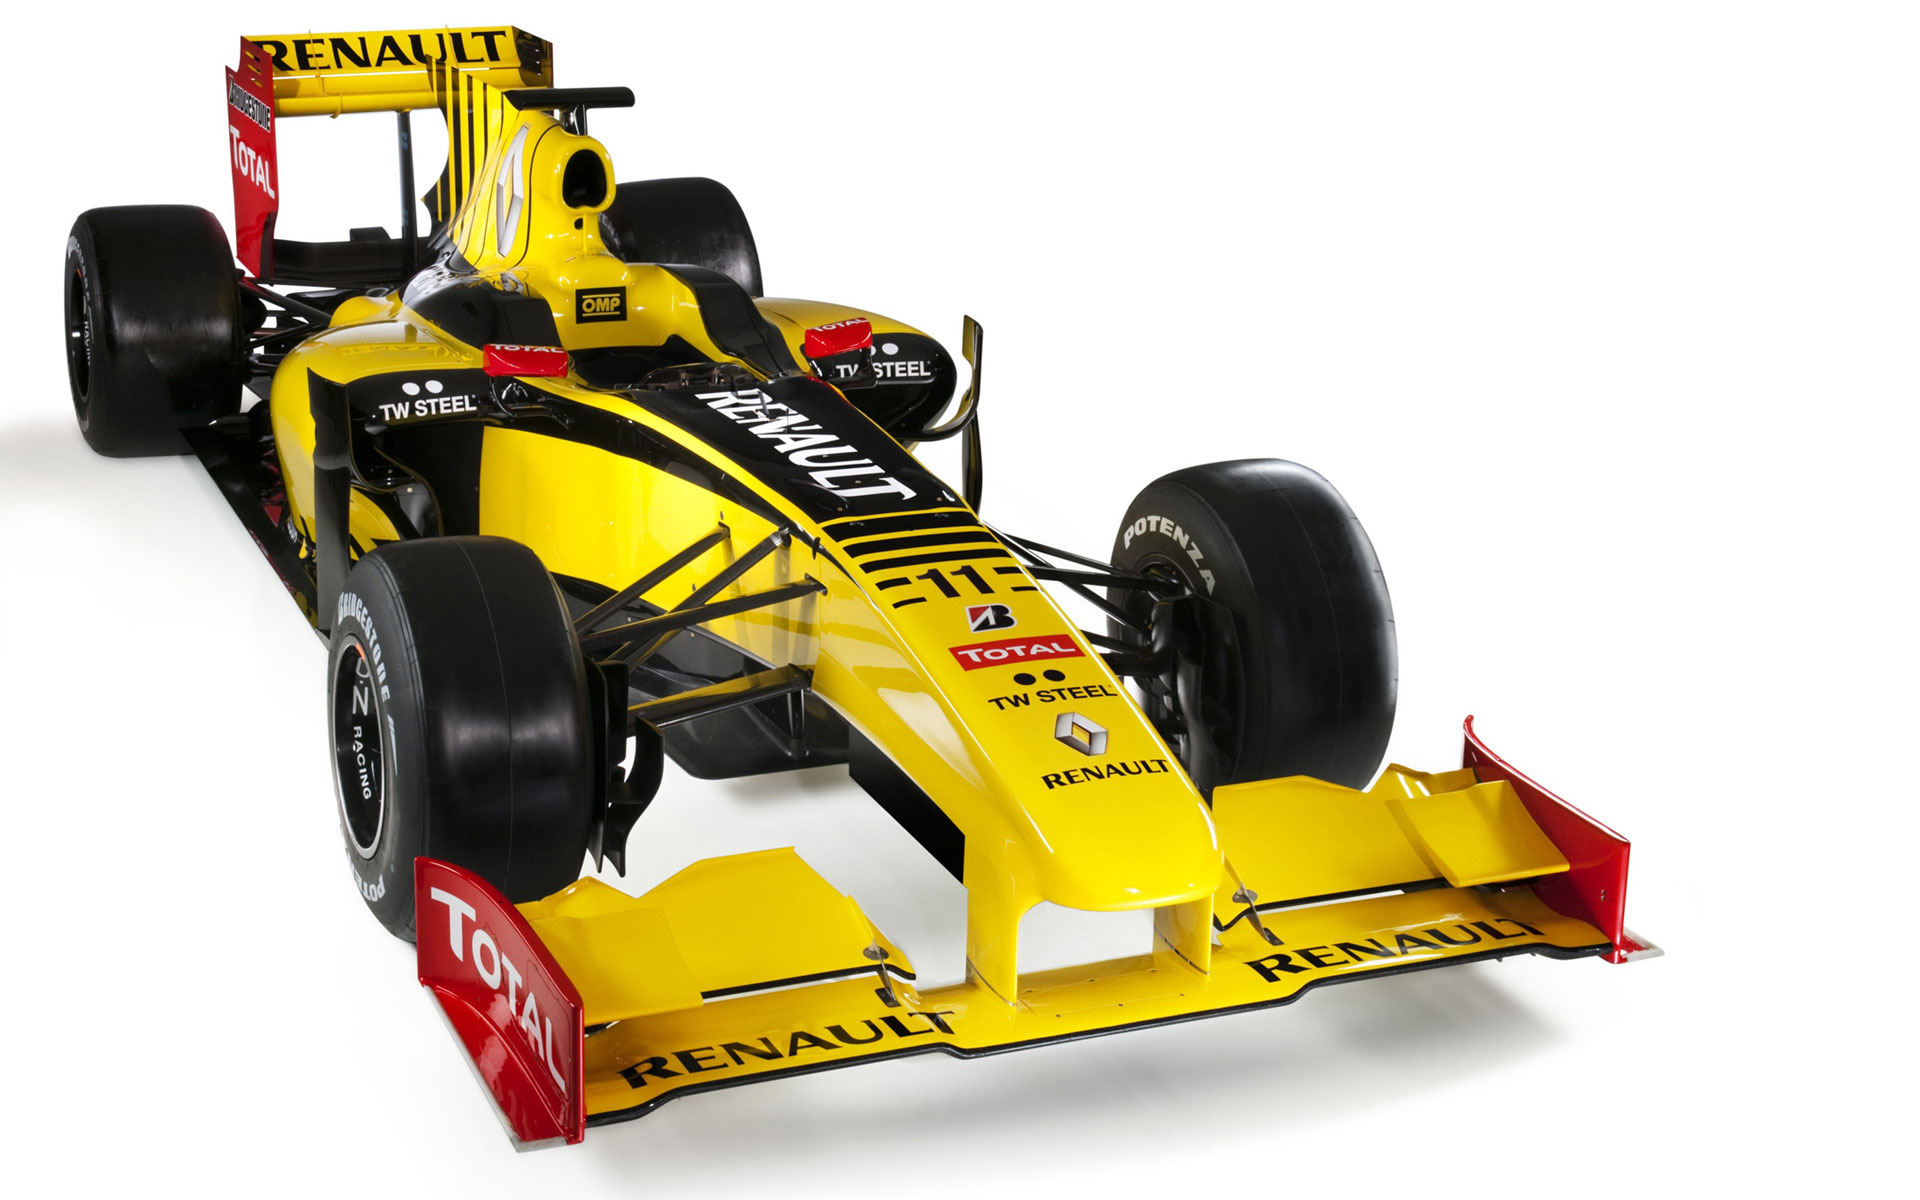 http://superf1.be/spip/IMG/jpg/renault-r30-f1-wallpaper-2010-3.jpg